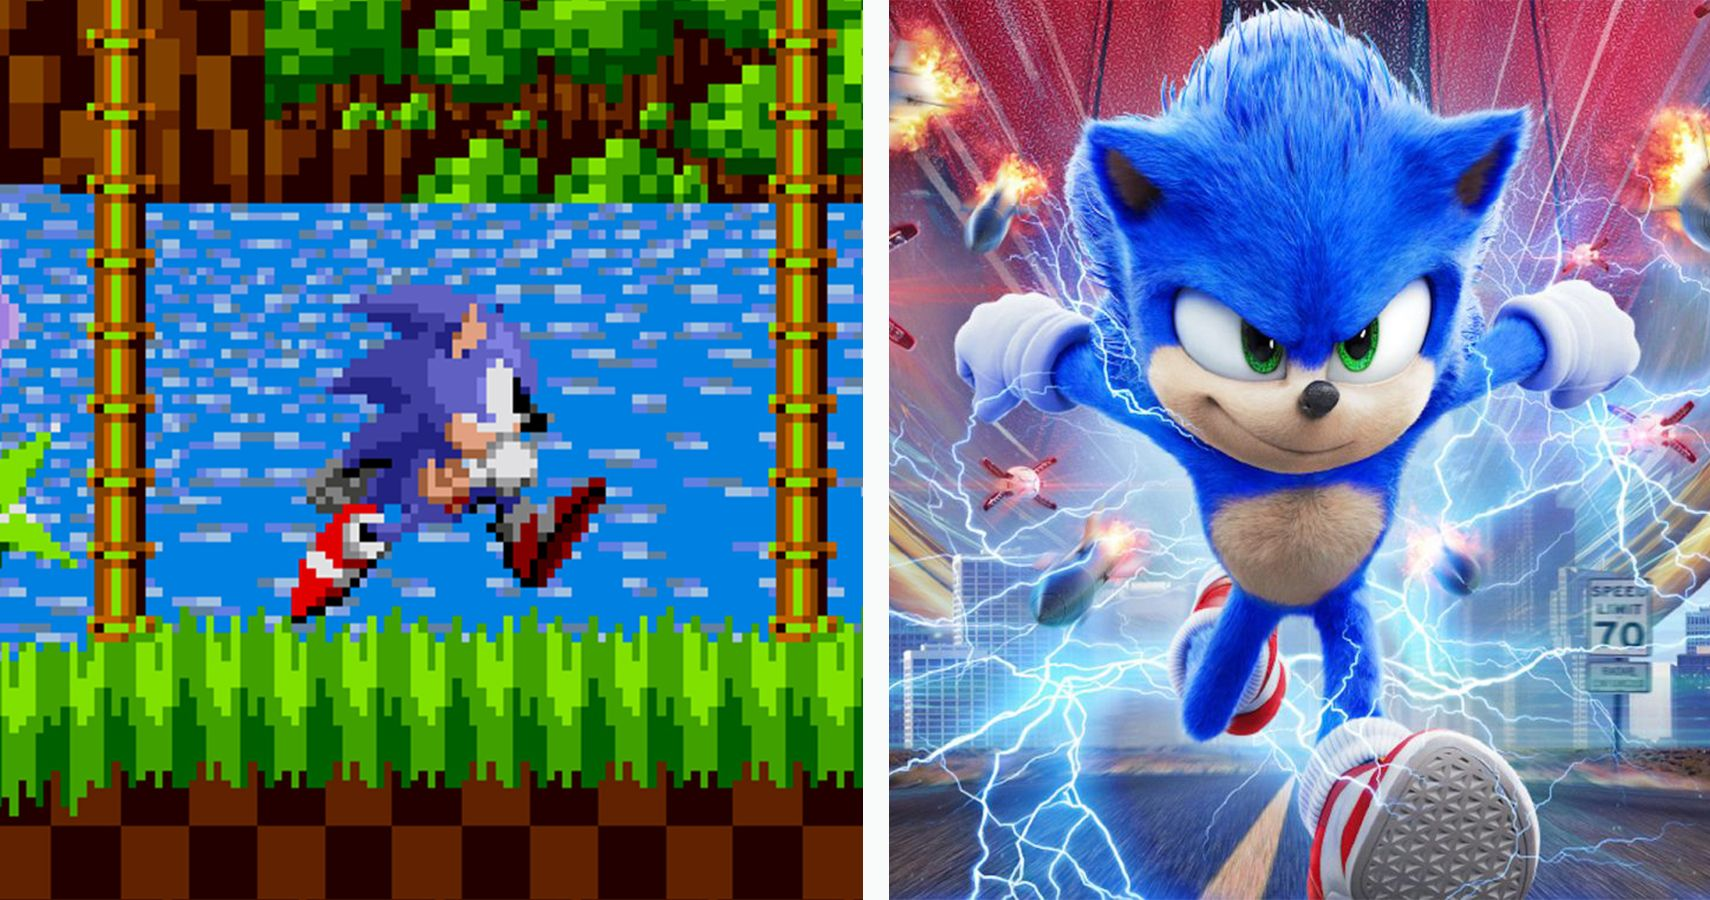 Sonic The Hedgehog Movie 10 Changes They Made To The Characters From The Games